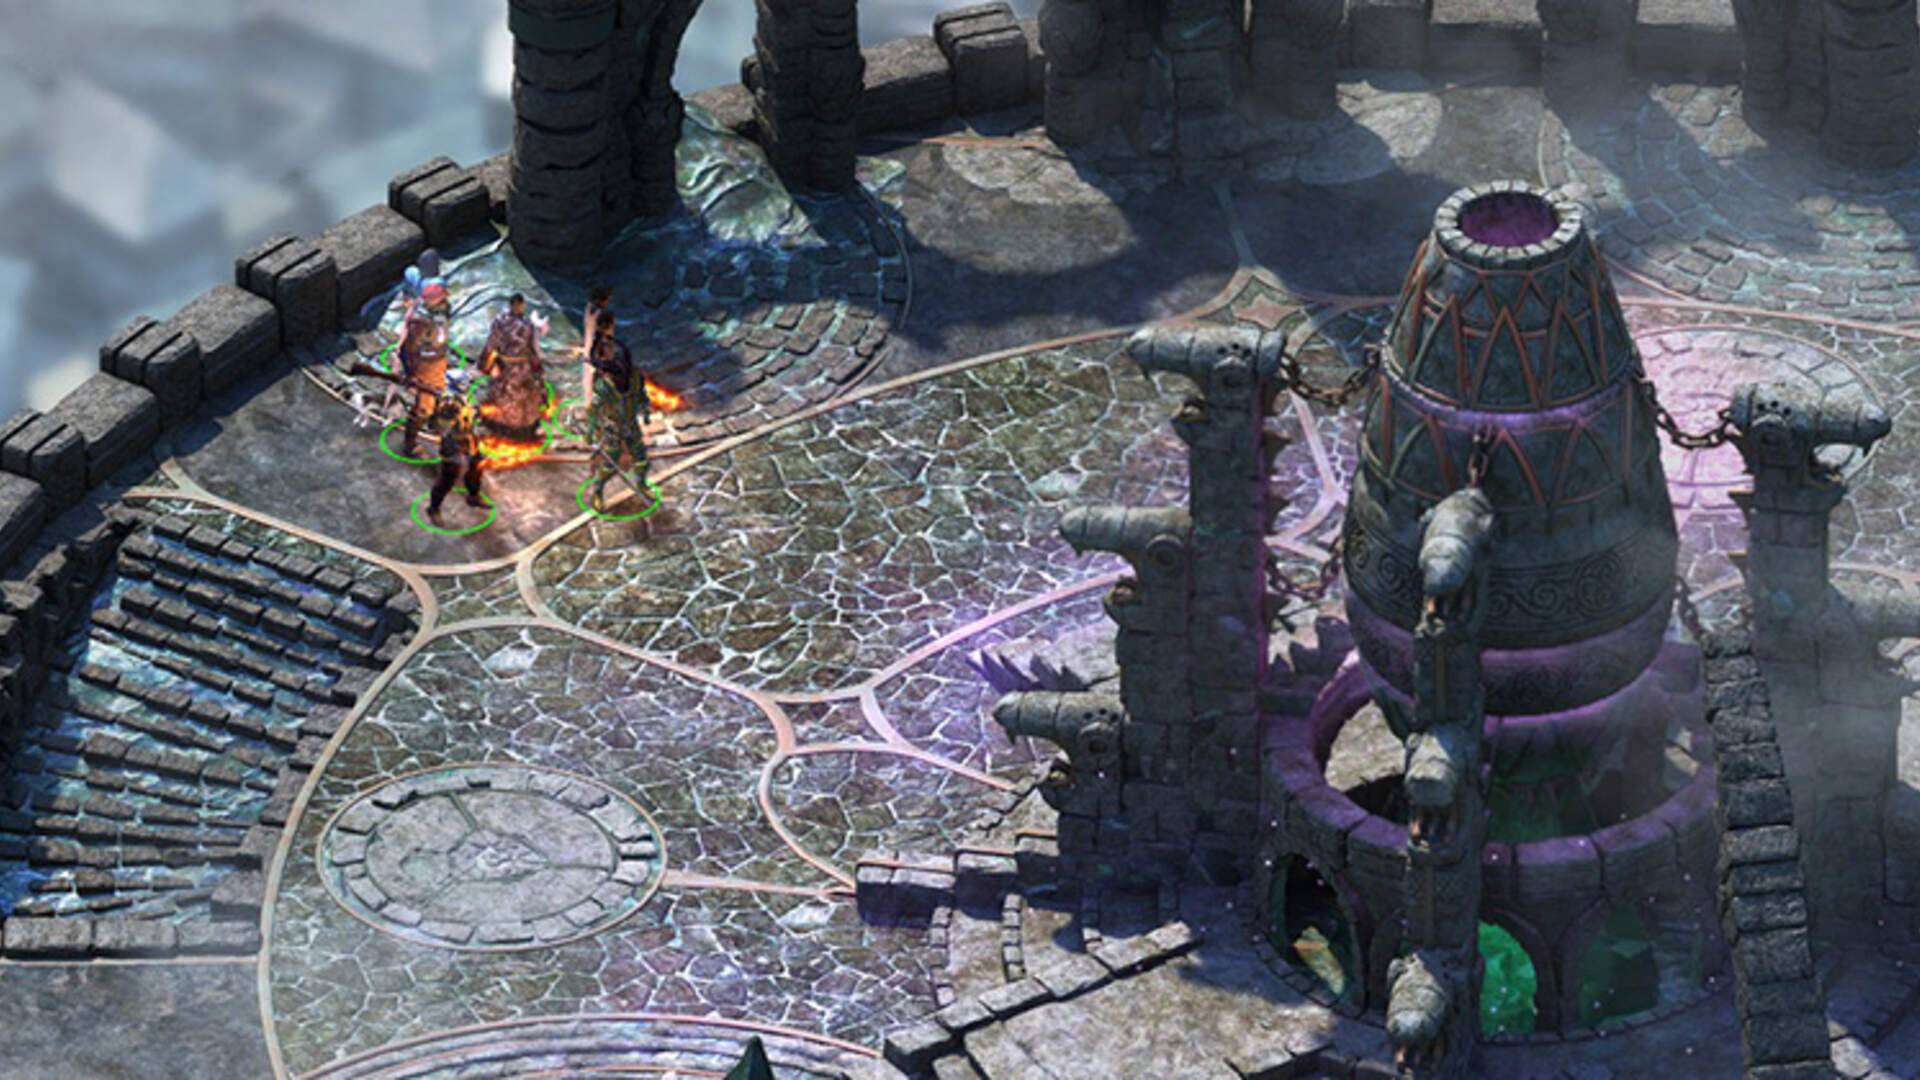 Pillars of Eternity Side Quest Guide - Act III: Elm's Reach, Oldsong, and Hearthsong